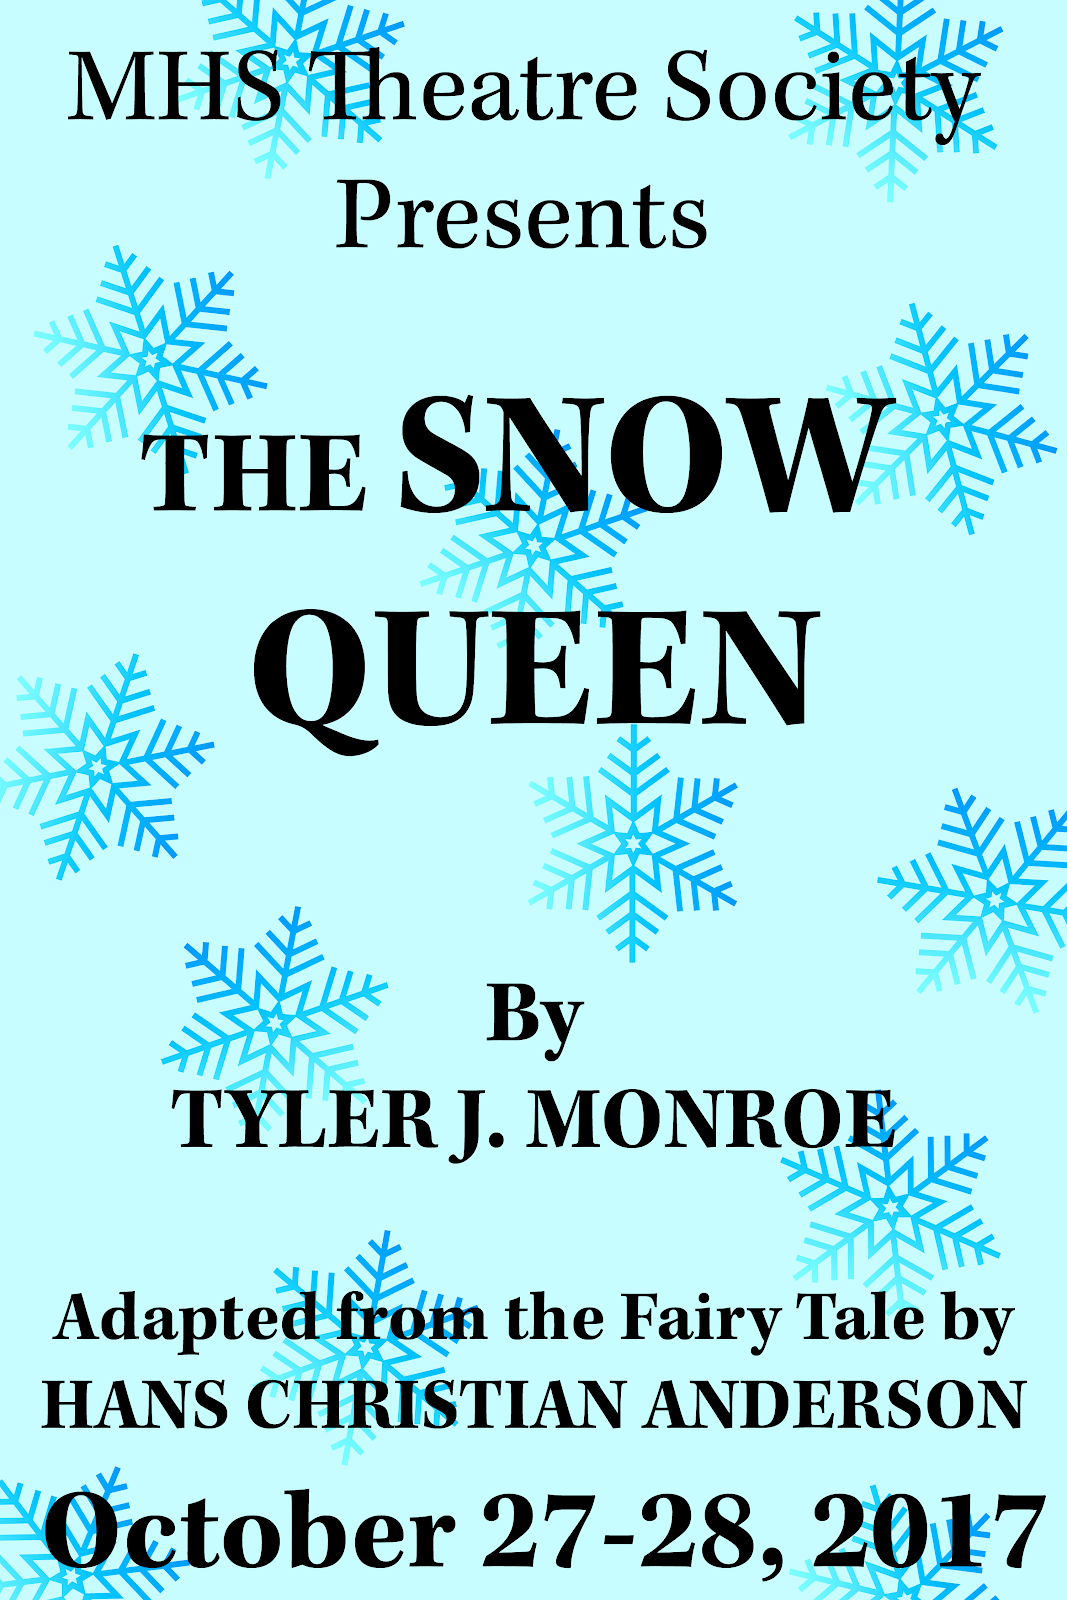 Snow Queen flyer.png